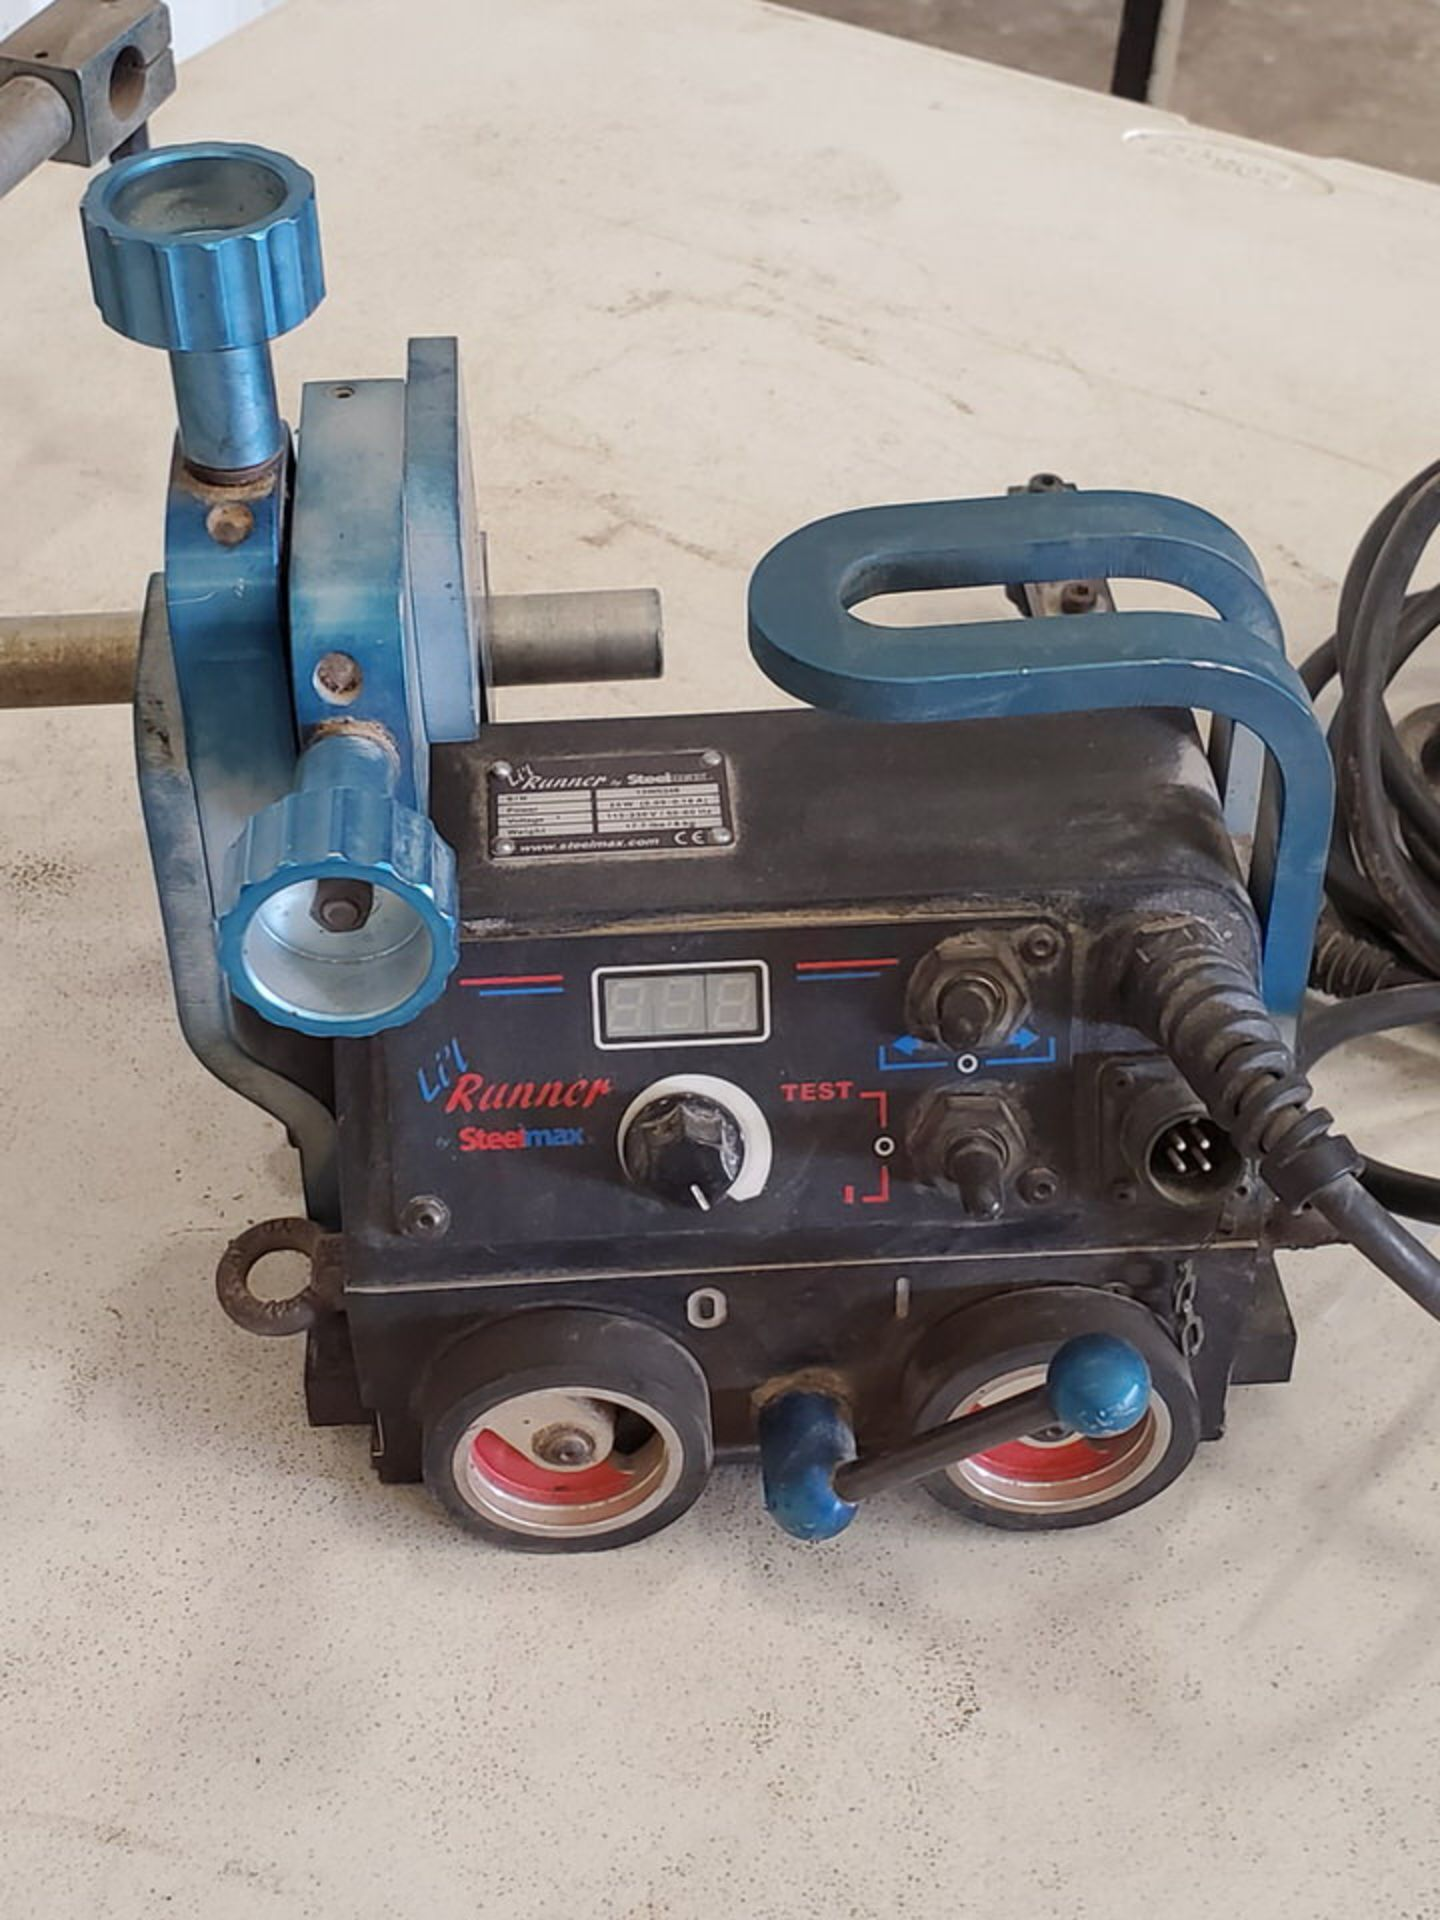 Steelmax Lil Runner Portable Fillet Welding Carriage 115-230V, 50/60HZ, 20W, .09-.18A - Image 3 of 7